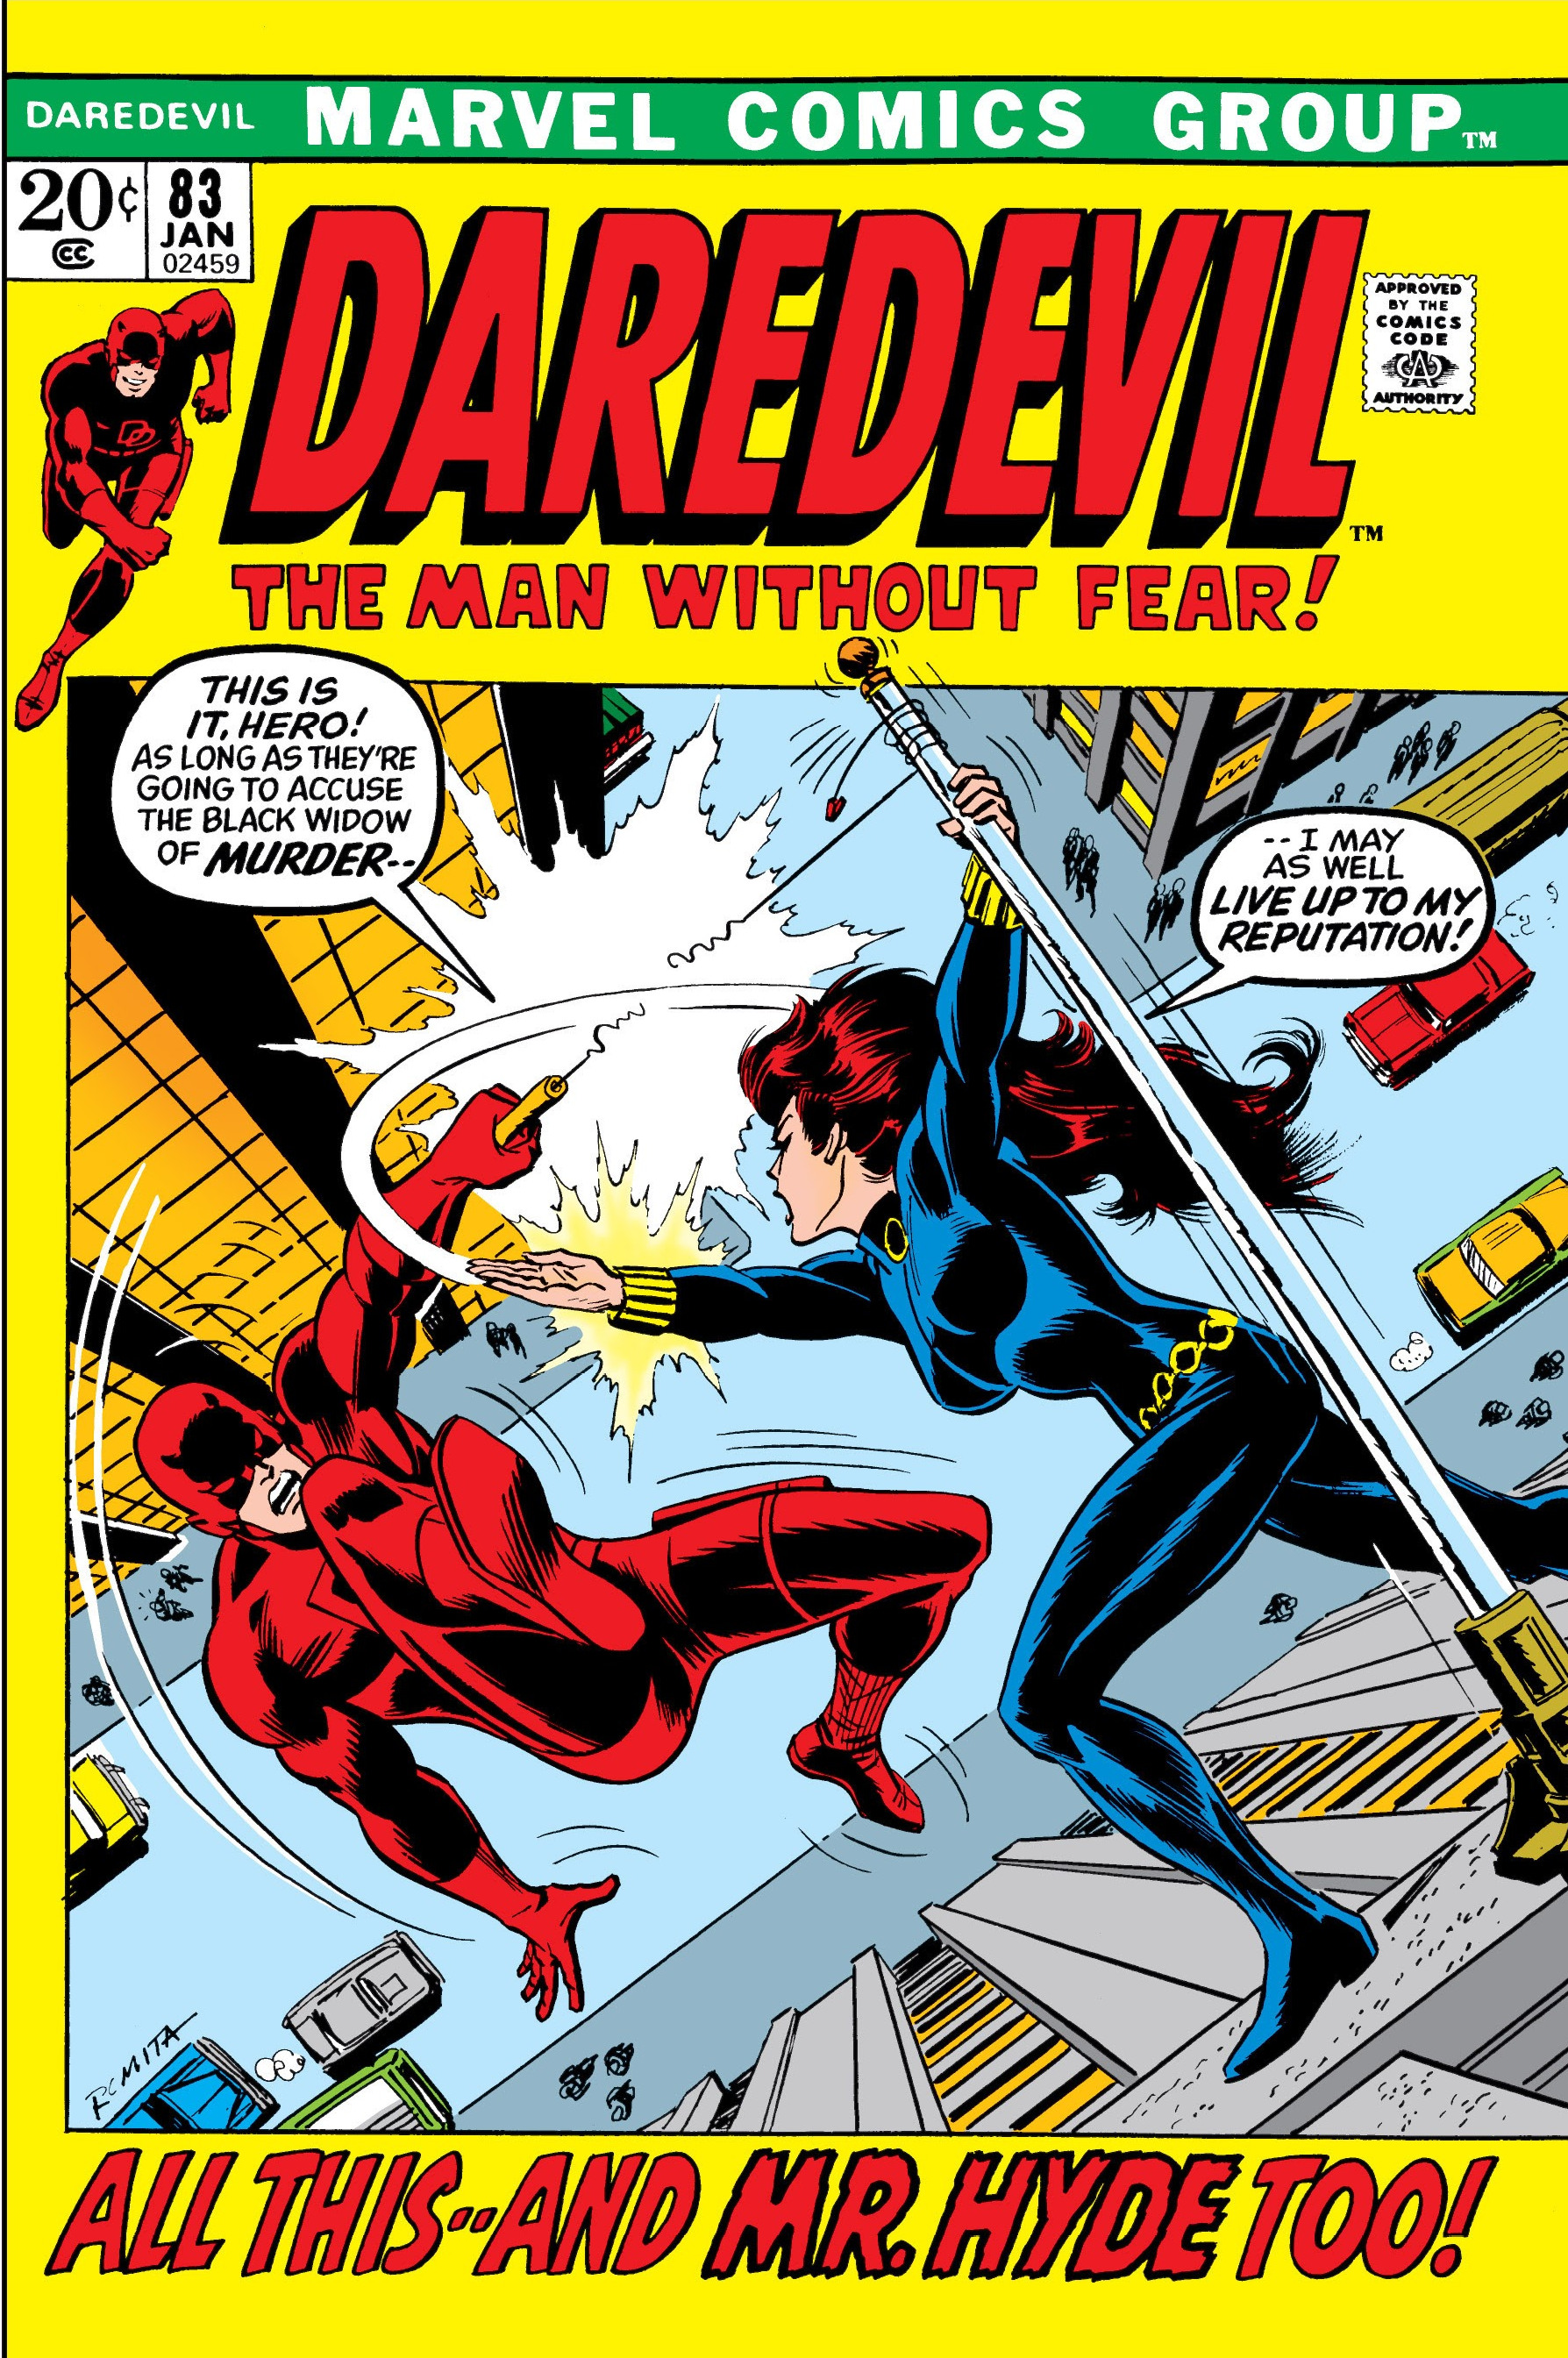 Daredevil Vol 1 83